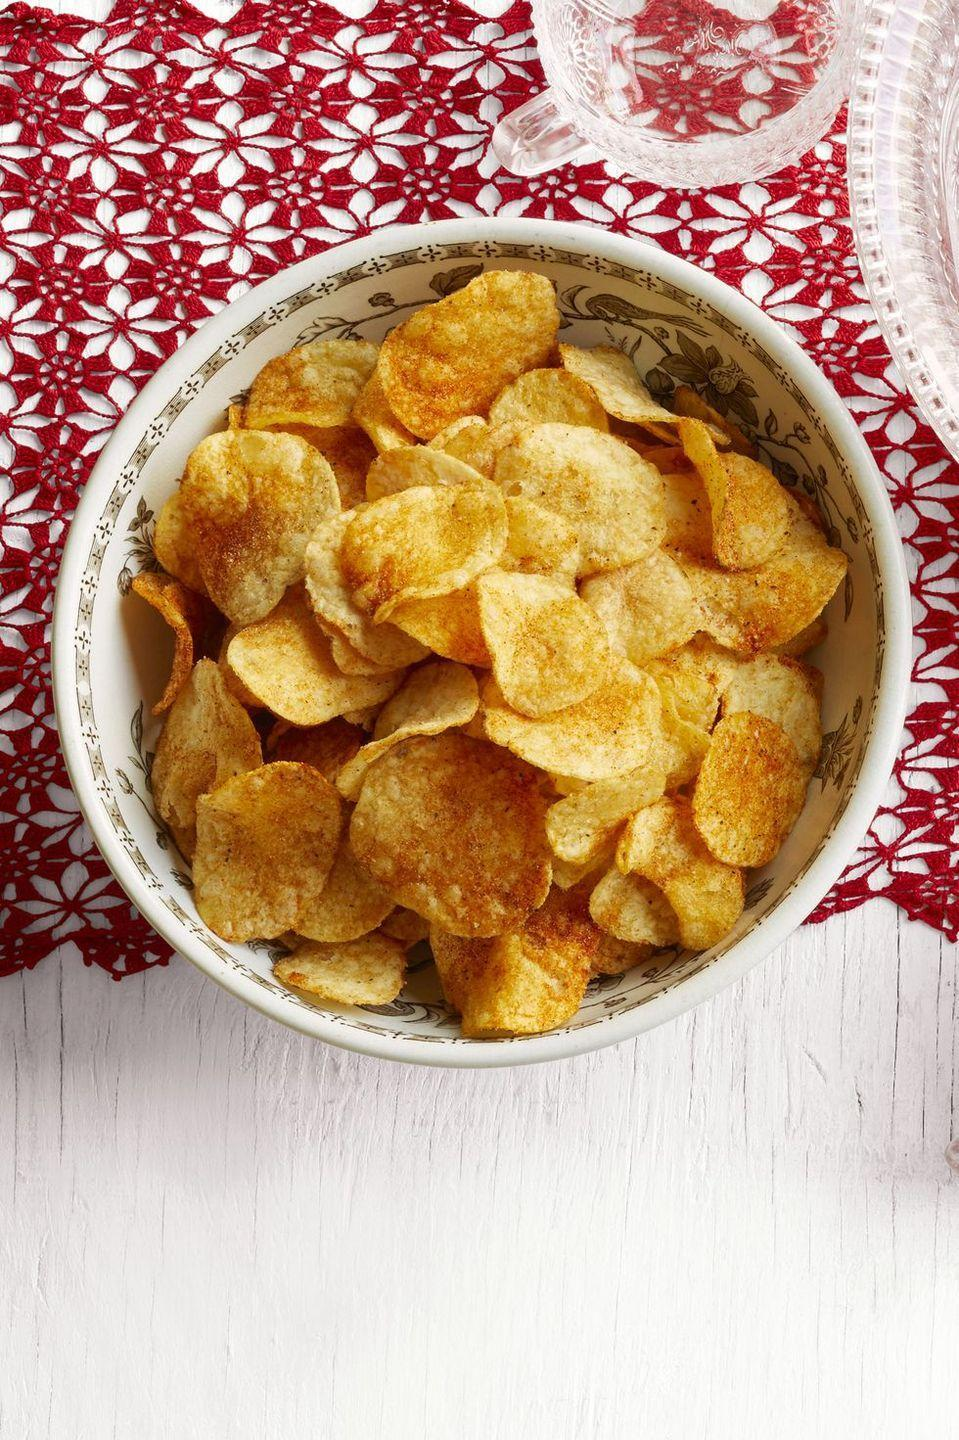 """<p>A dash of garlic salt, paprika, and cayenne pepper elevate a regular old bag of potato chips. It's a fun snack to serve for the Super Bowl.</p><p><strong><a href=""""https://www.thepioneerwoman.com/food-cooking/recipes/a34272361/spiced-up-potato-chips-recipe/"""" rel=""""nofollow noopener"""" target=""""_blank"""" data-ylk=""""slk:Get the recipe."""" class=""""link rapid-noclick-resp"""">Get the recipe.</a></strong></p><p><strong><a class=""""link rapid-noclick-resp"""" href=""""https://go.redirectingat.com?id=74968X1596630&url=https%3A%2F%2Fwww.walmart.com%2Fbrowse%2Fhome%2Fthe-pioneer-woman-bowls%2F4044_623679_3480962_3544662&sref=https%3A%2F%2Fwww.thepioneerwoman.com%2Ffood-cooking%2Fmeals-menus%2Fg35049189%2Fsuper-bowl-food-recipes%2F"""" rel=""""nofollow noopener"""" target=""""_blank"""" data-ylk=""""slk:SHOP BOWLS"""">SHOP BOWLS</a><br></strong></p>"""